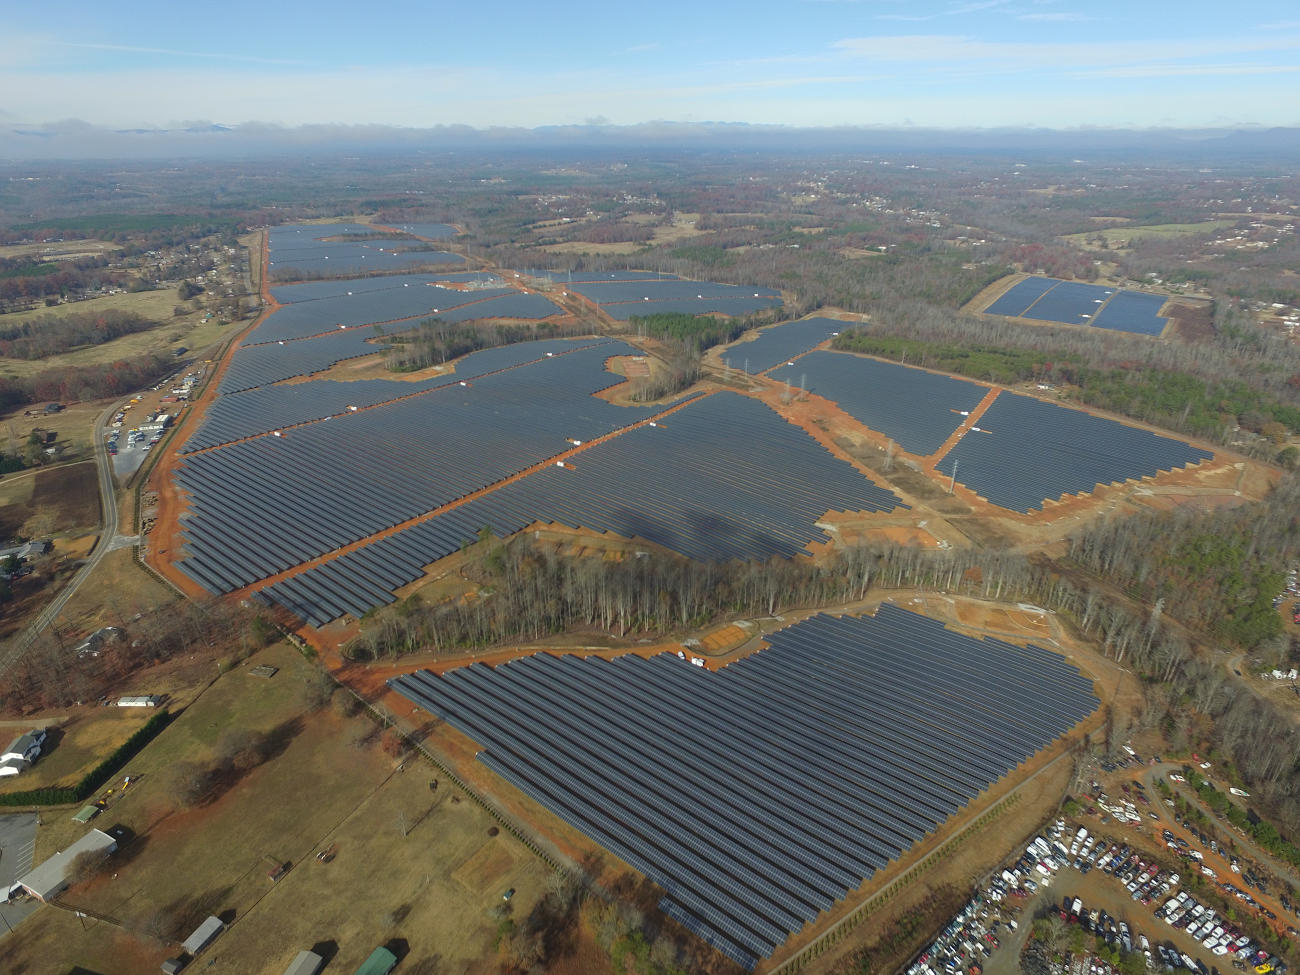 www.blog.google - Amanda Corio - Why we're putting 1.6 million solar panels in Tennessee and Alabama